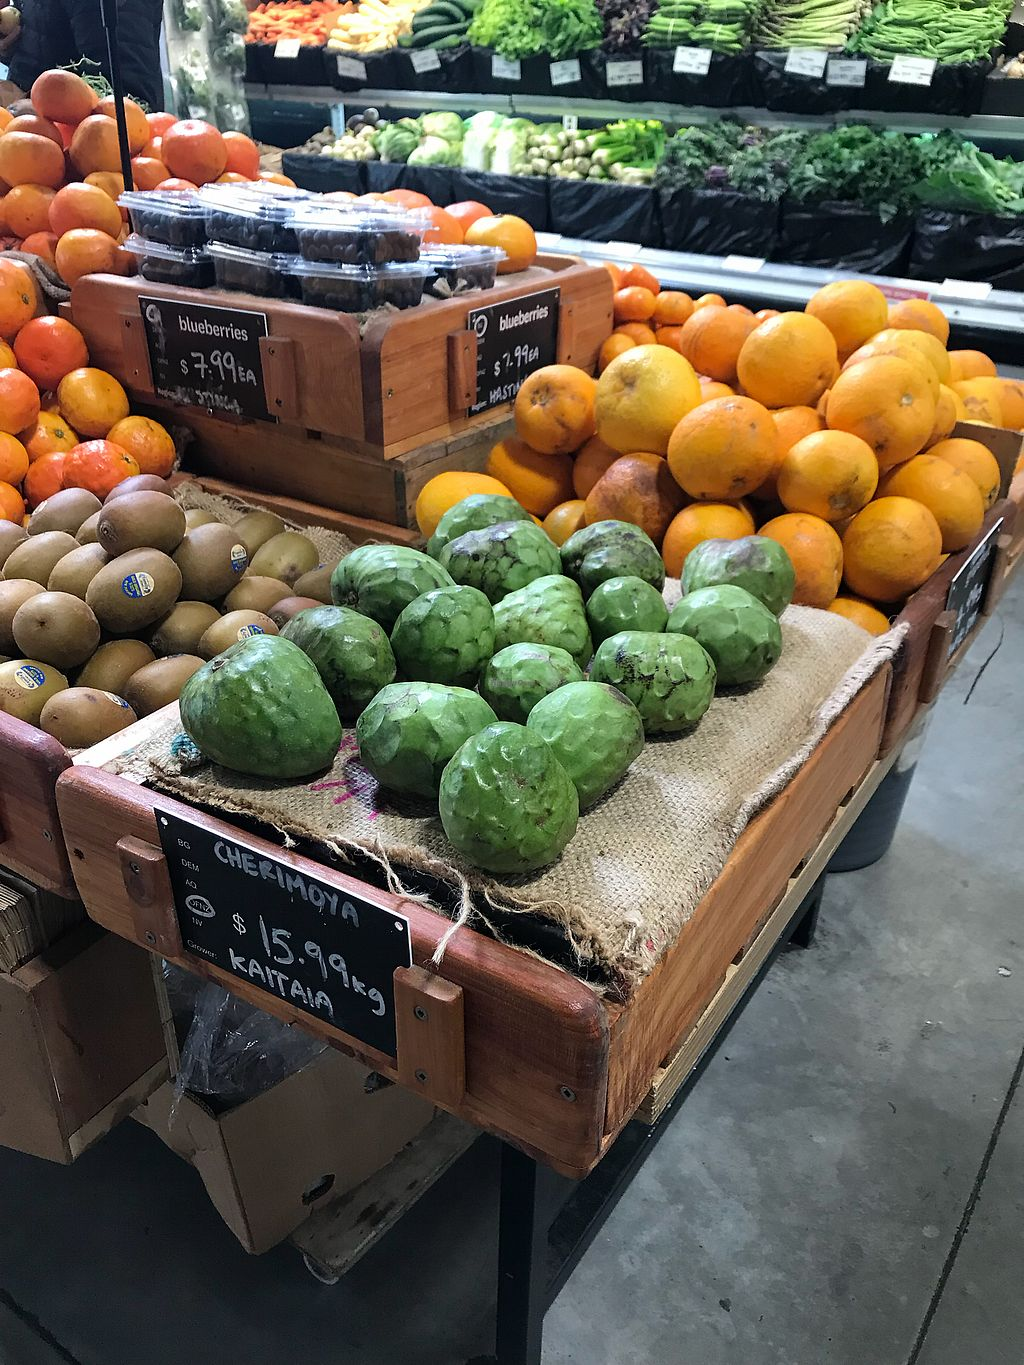 "Photo of Commonsense Organics - Kilbirnie  by <a href=""/members/profile/Paolla"">Paolla</a> <br/>Fruits <br/> November 19, 2017  - <a href='/contact/abuse/image/15866/327213'>Report</a>"